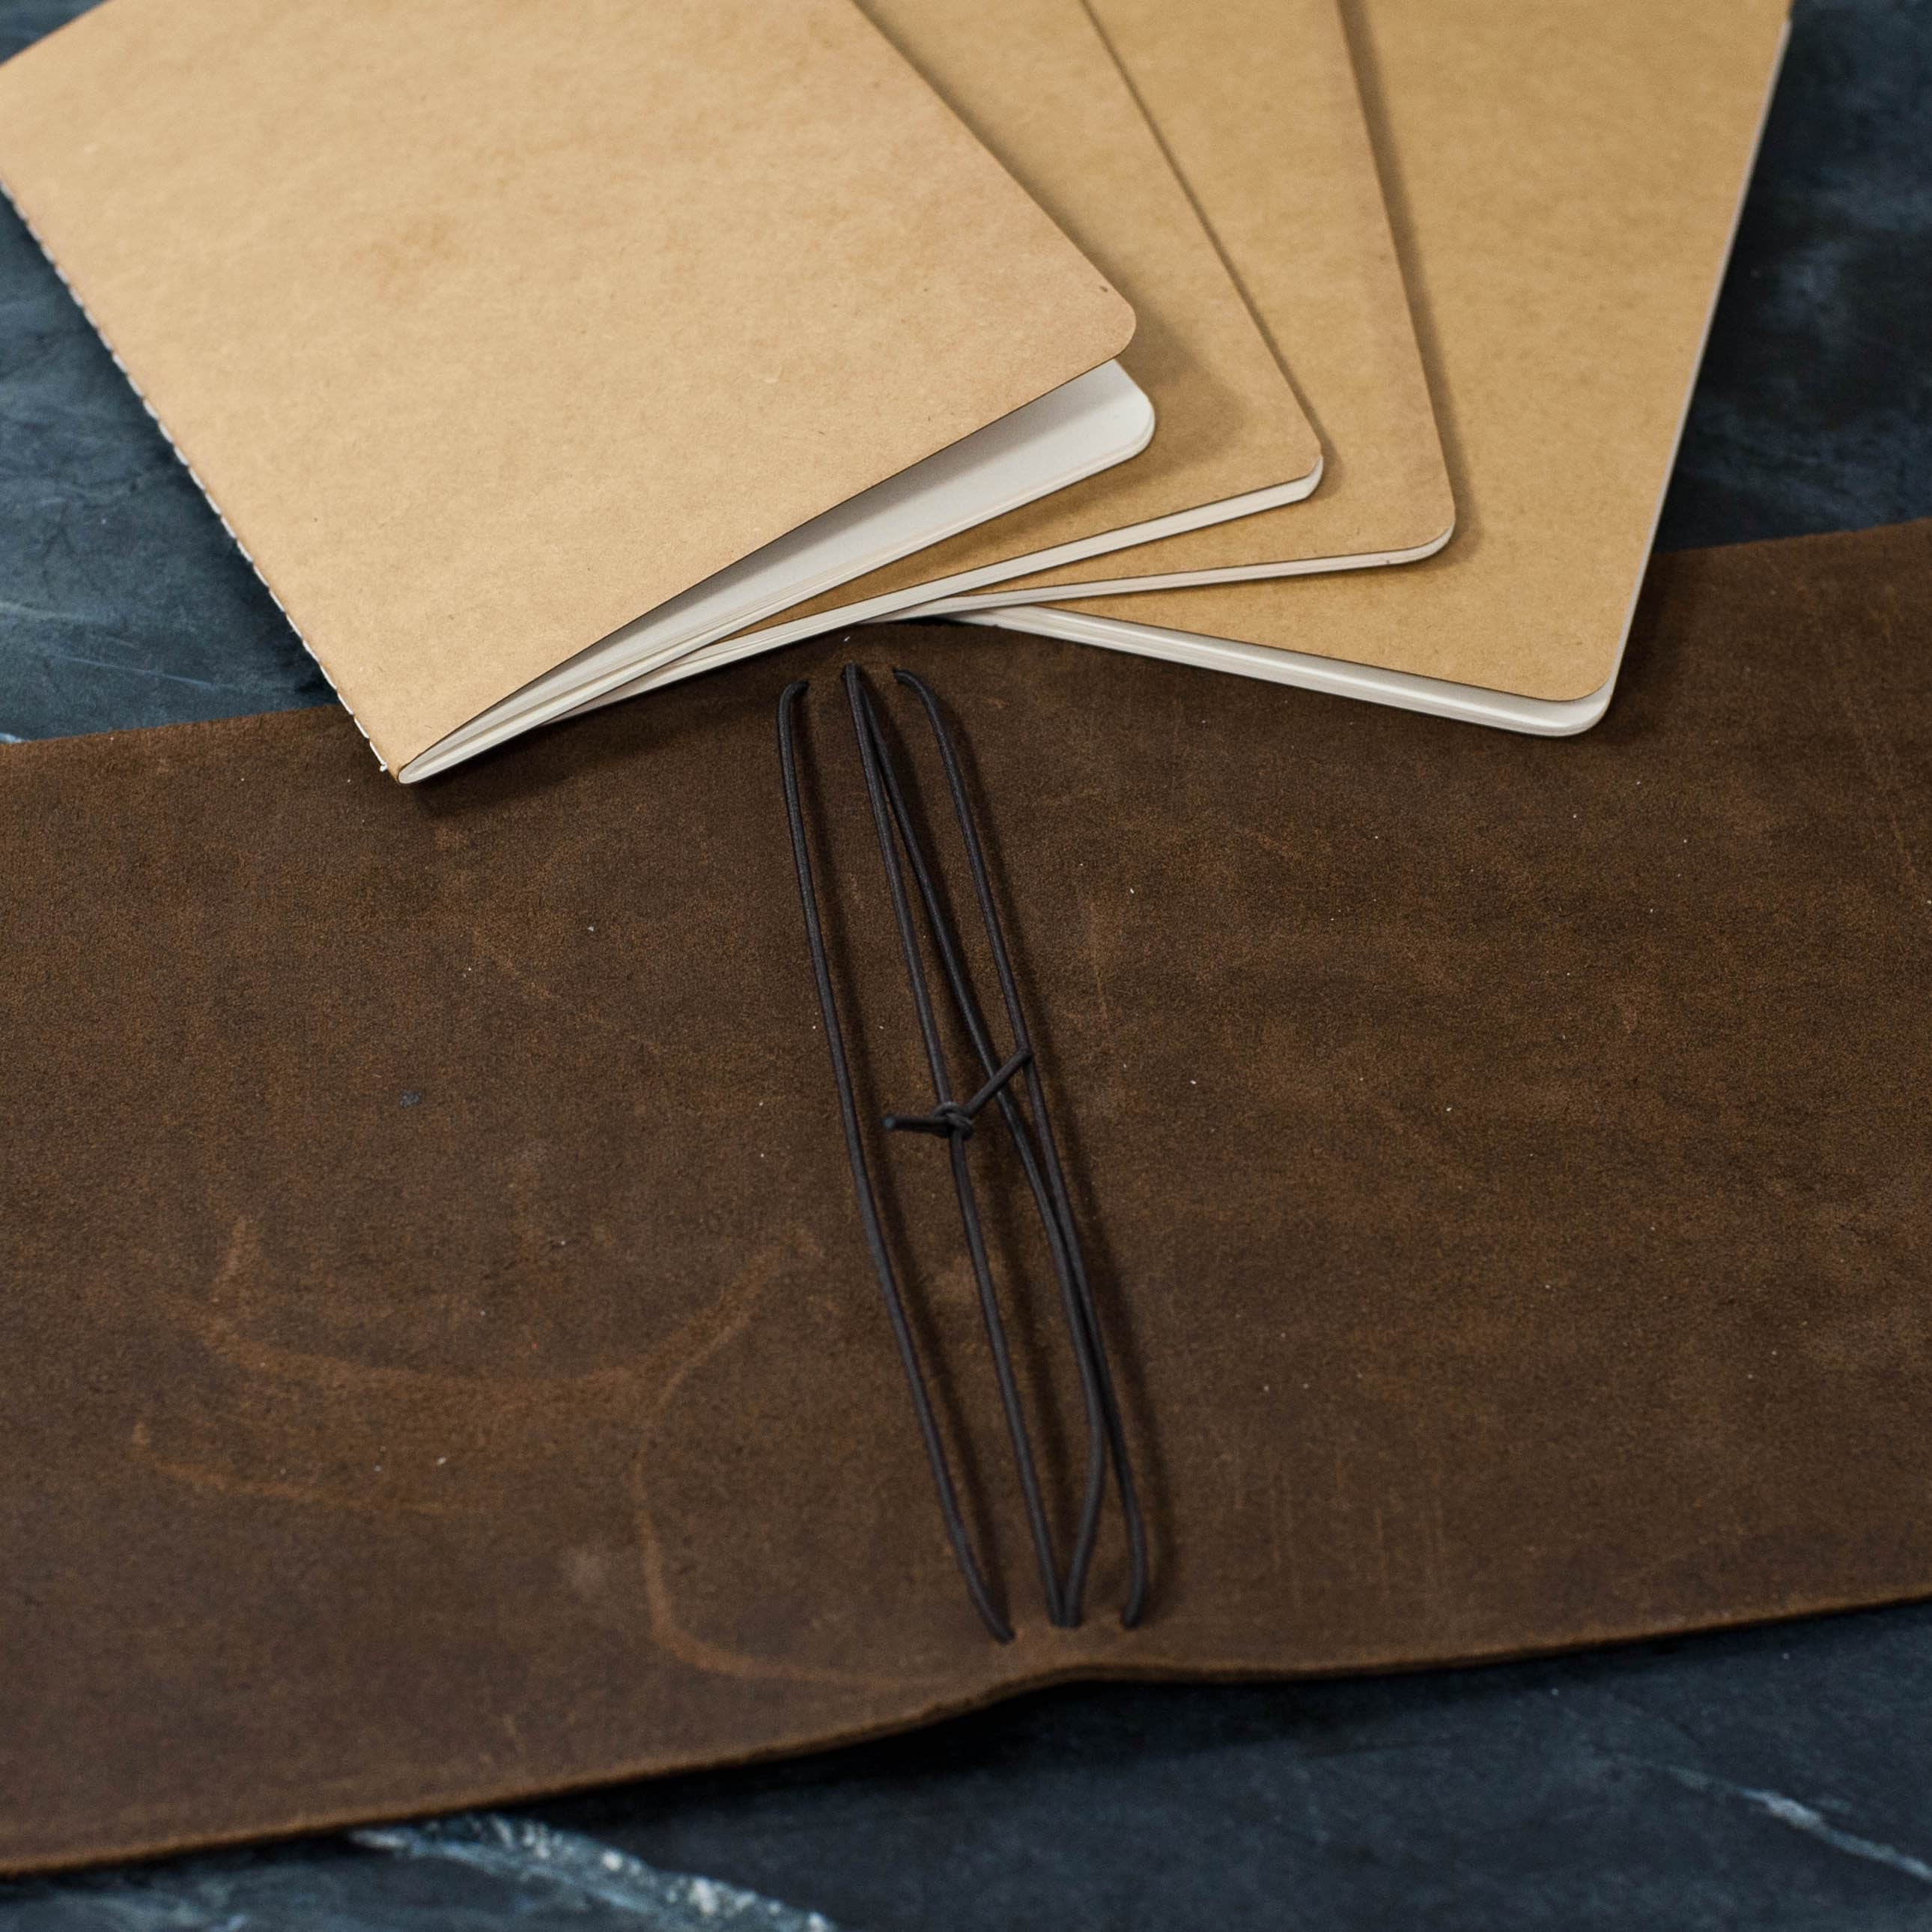 REFILLABLE Personalized Premium Leather Journal Notebook or image 4